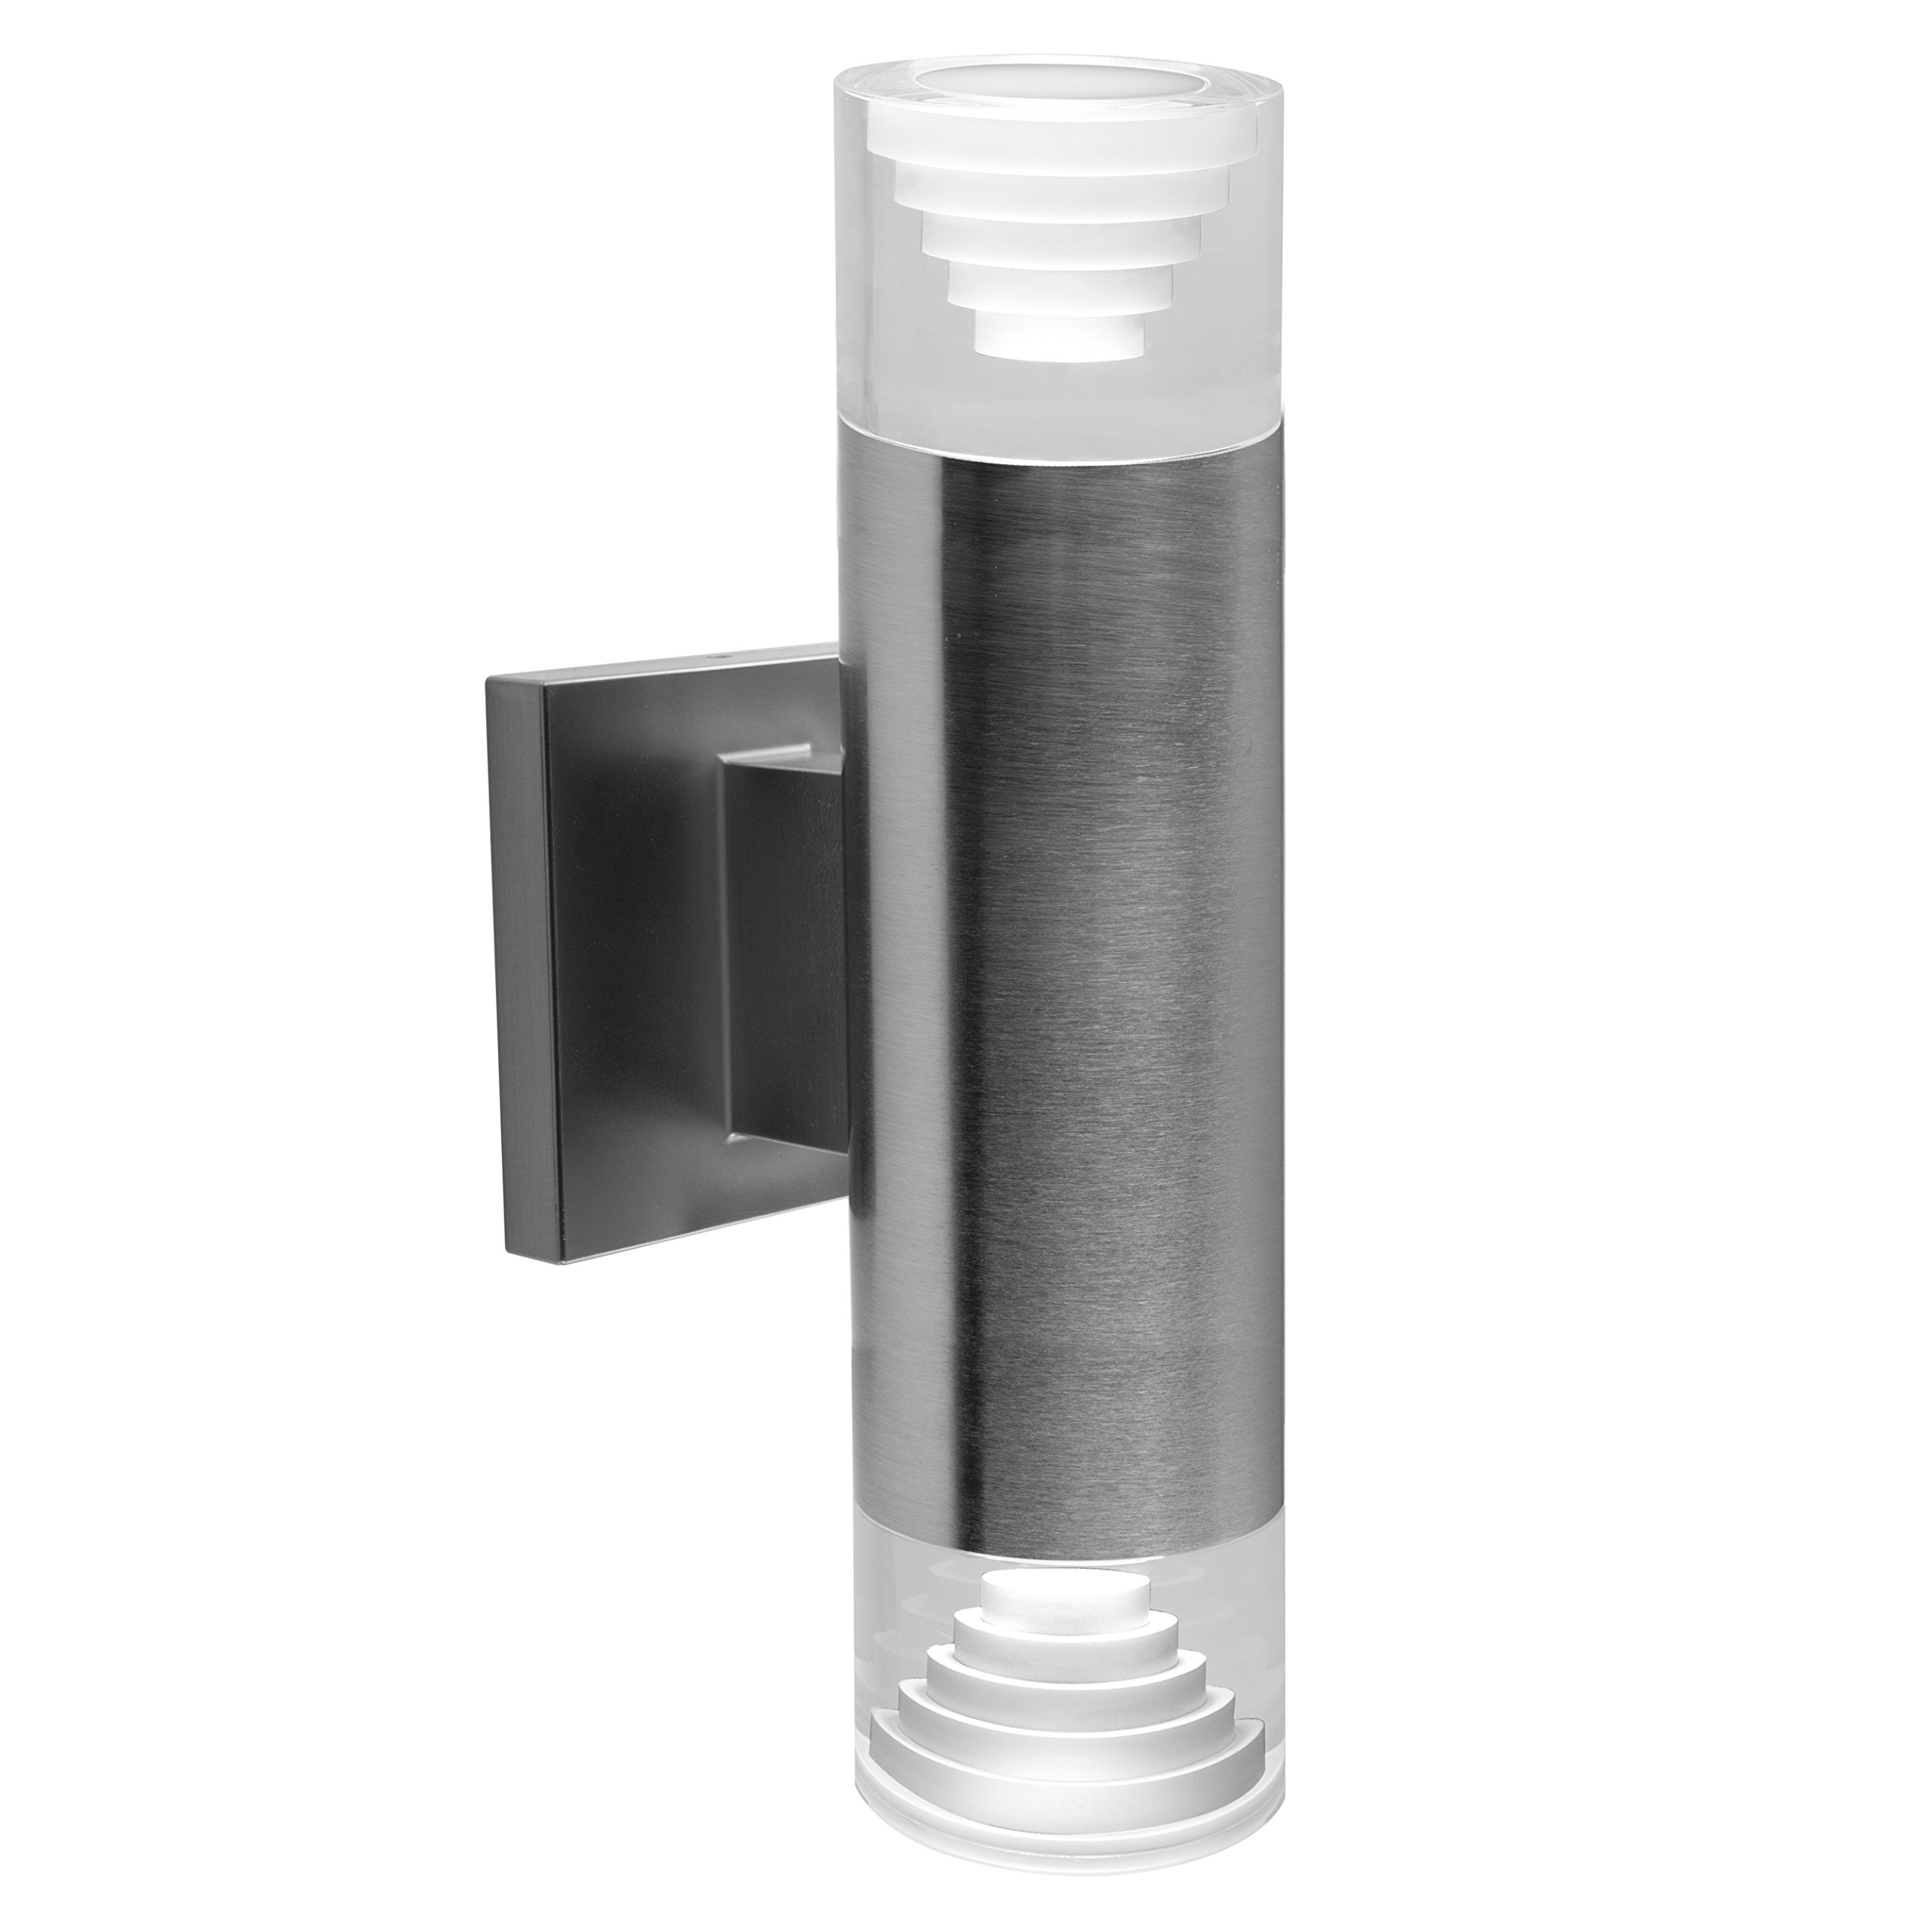 Bazz W16640SS LED Outdoor Wall Fixture, Stainless Steel